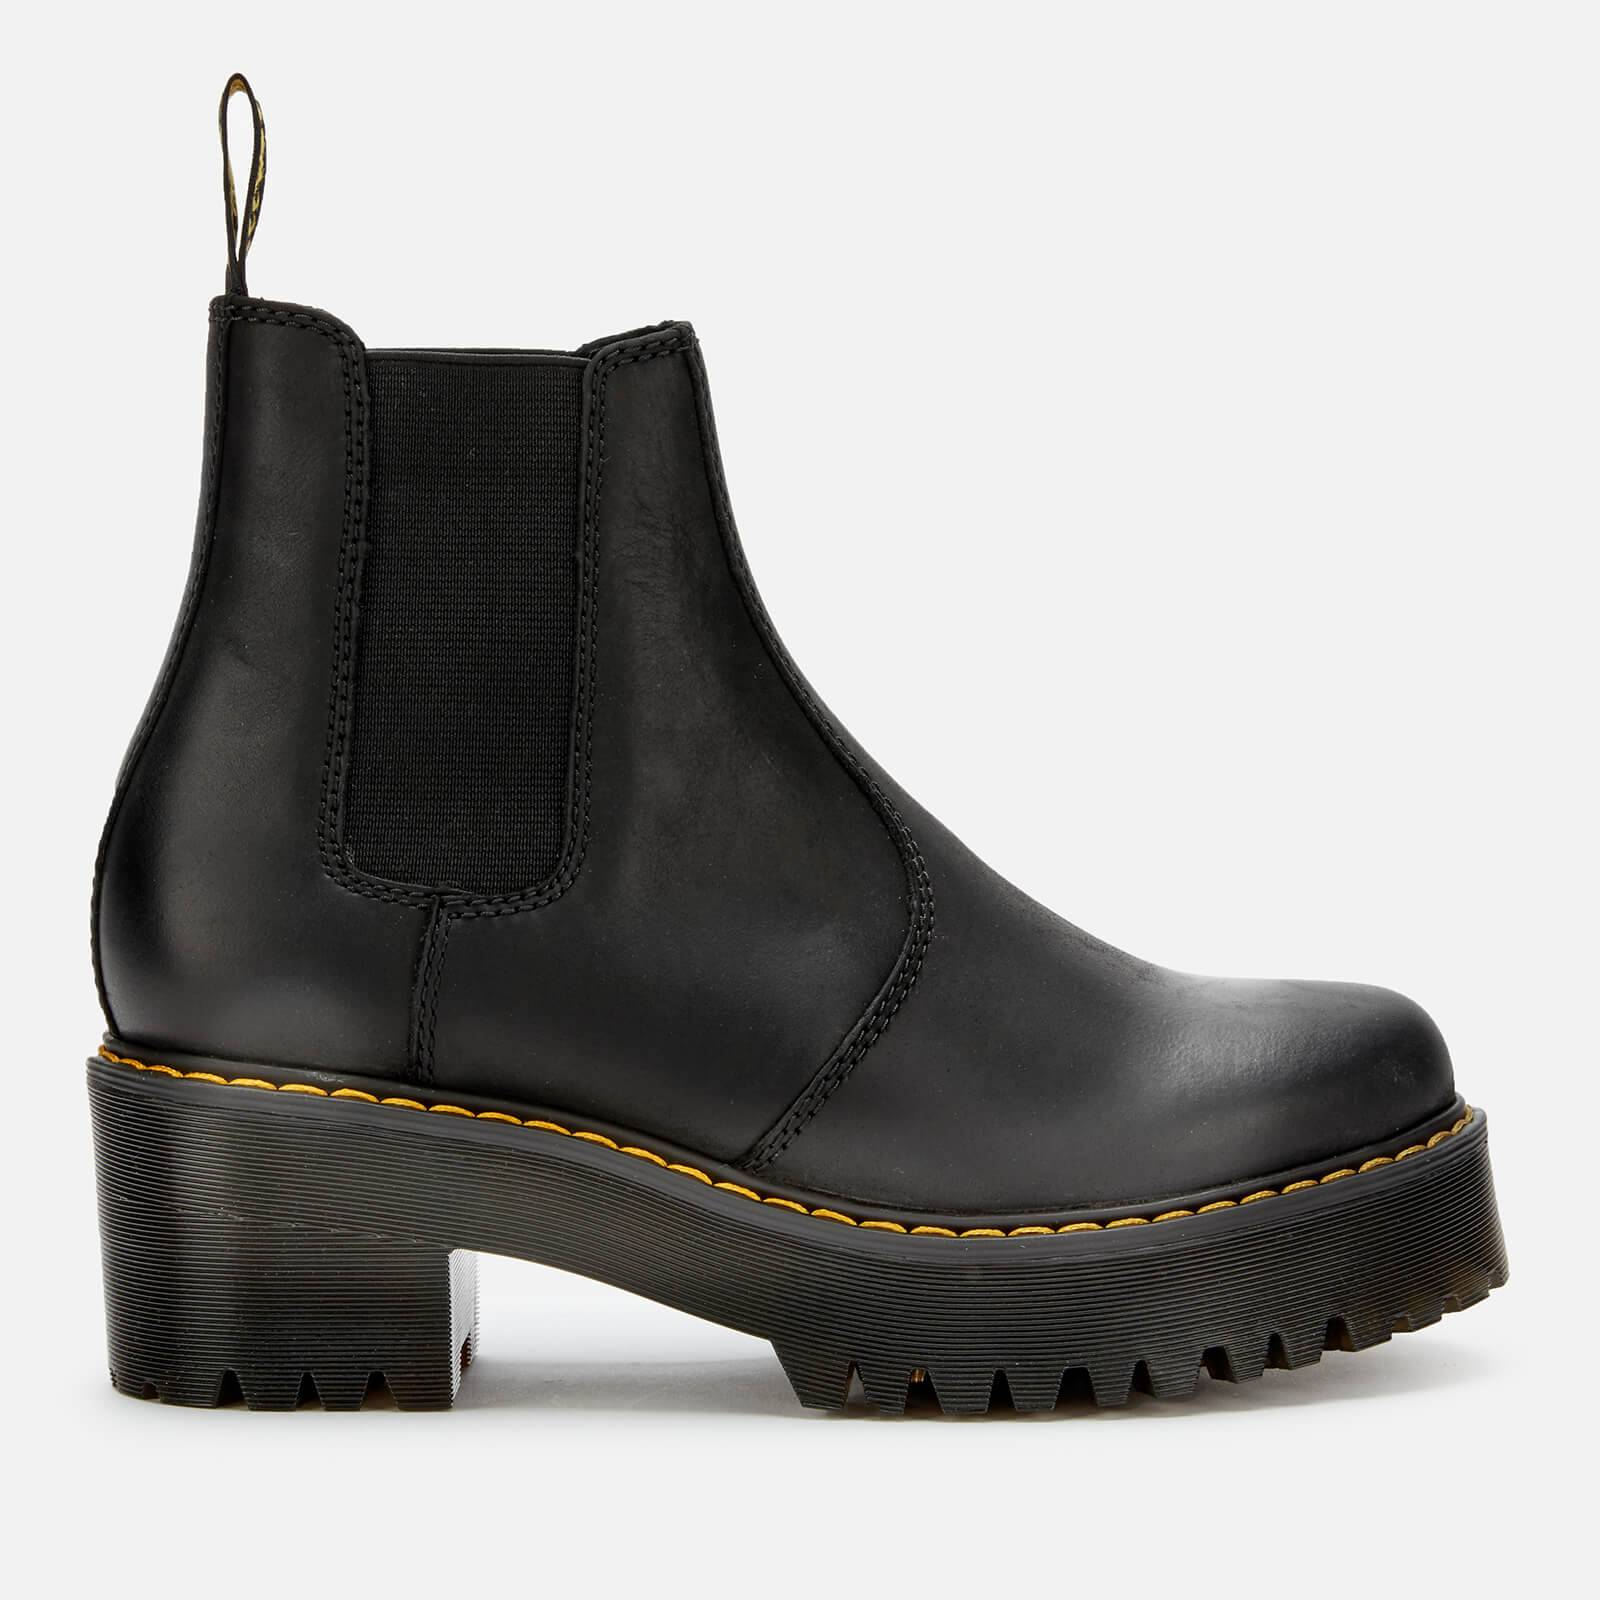 Dr. Martens Women's Rometty Leather Chunky Sole Chelsea Boots - Black - UK 5 - Black